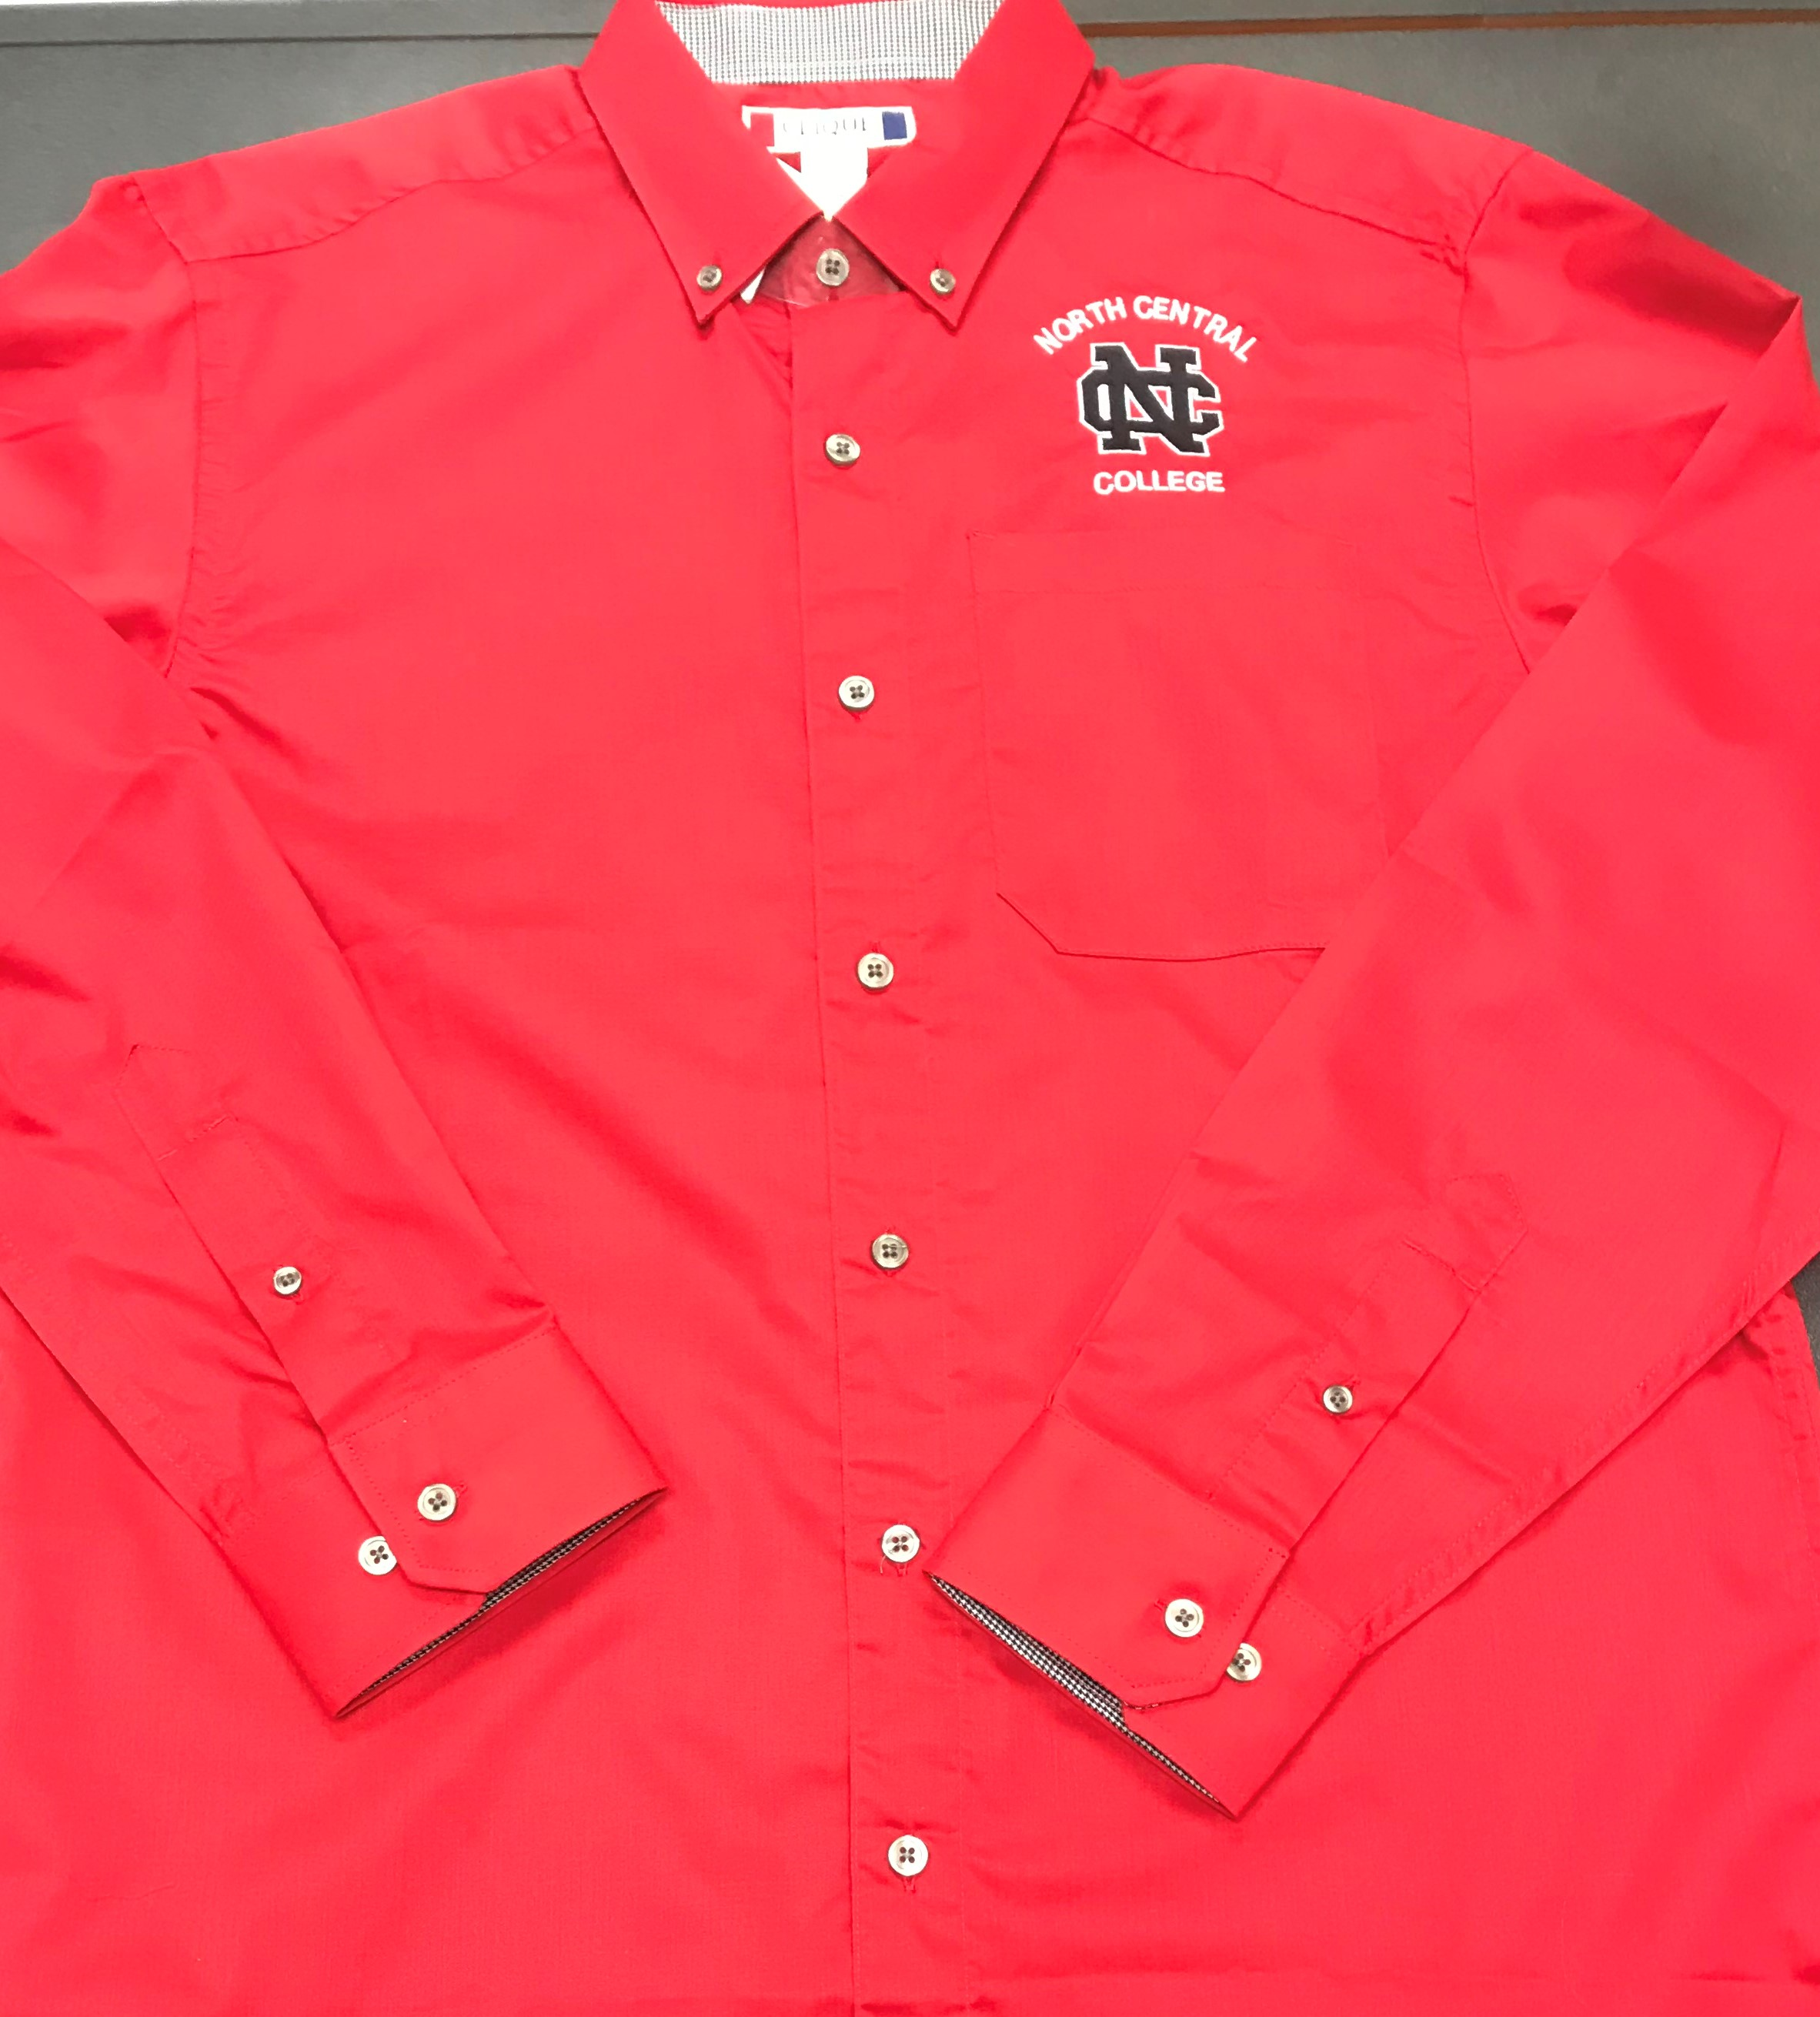 Image for the Clearance - (Small and Med only) Cutter & Buck LS Buttondown Shirt, Logo & School Name On Left product